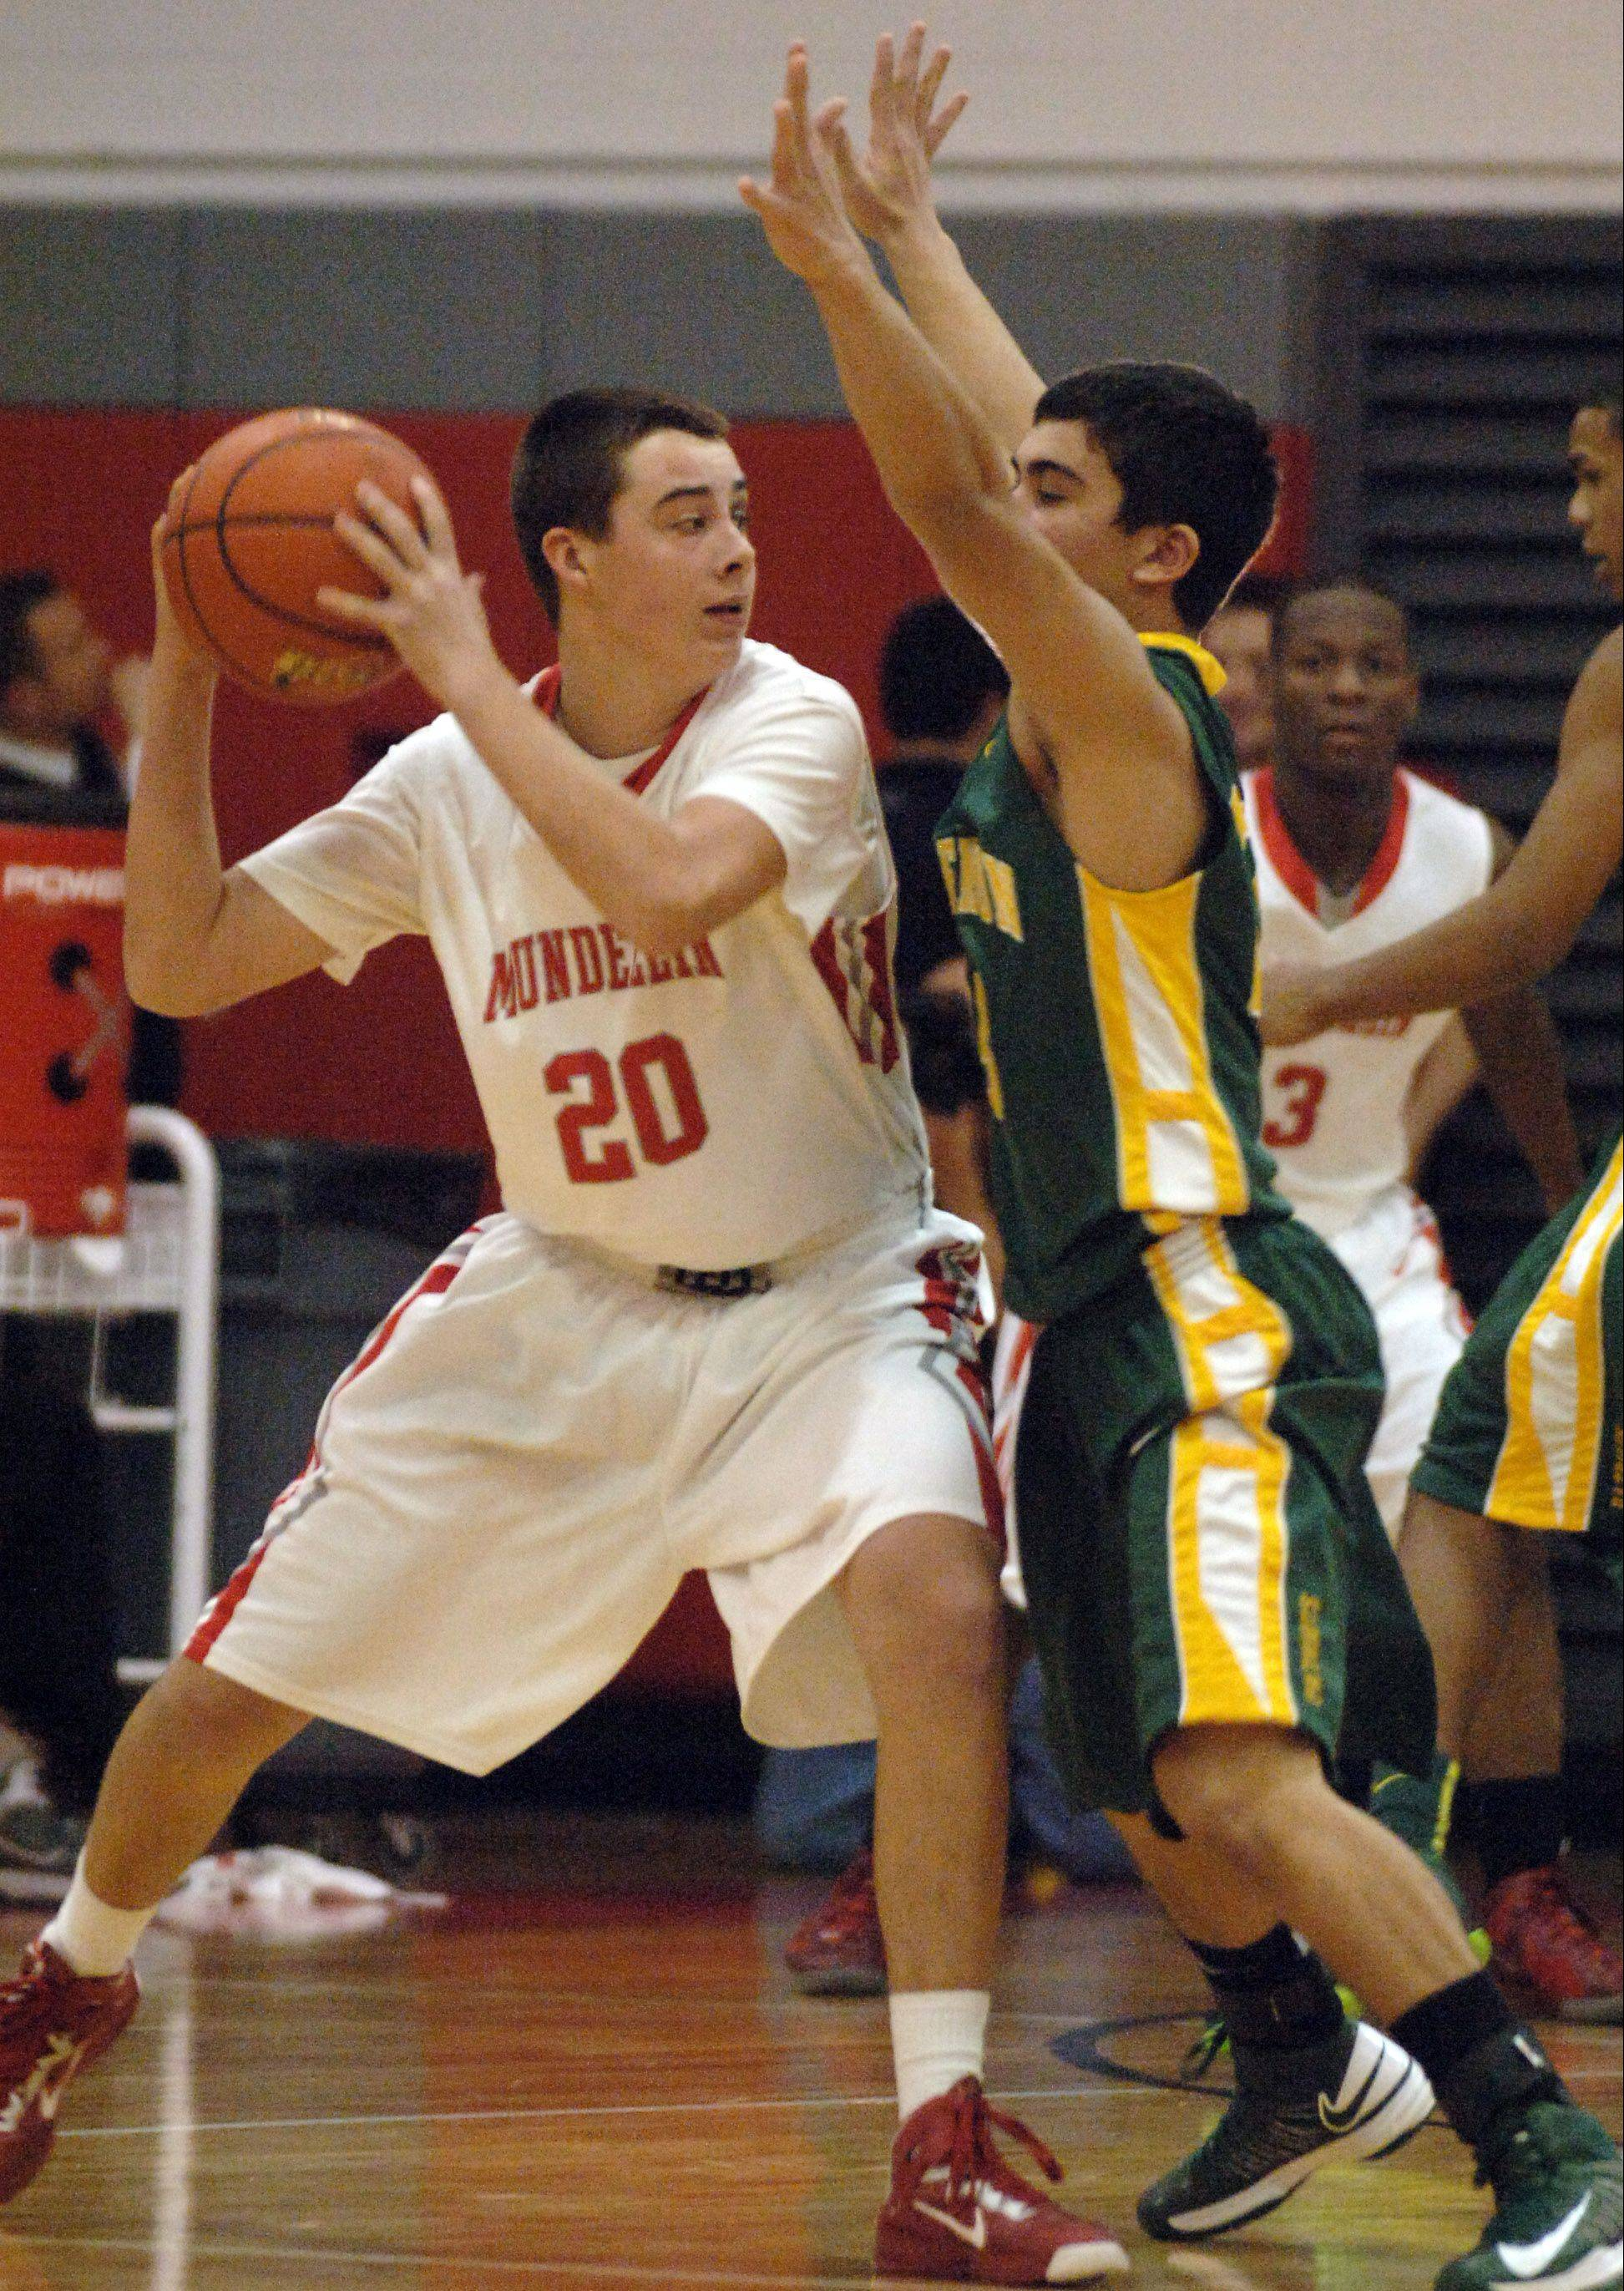 Mundelein's Derek Parola, left, looks to pass around Stevenson's Justin Berkson on Friday in Mundelein.